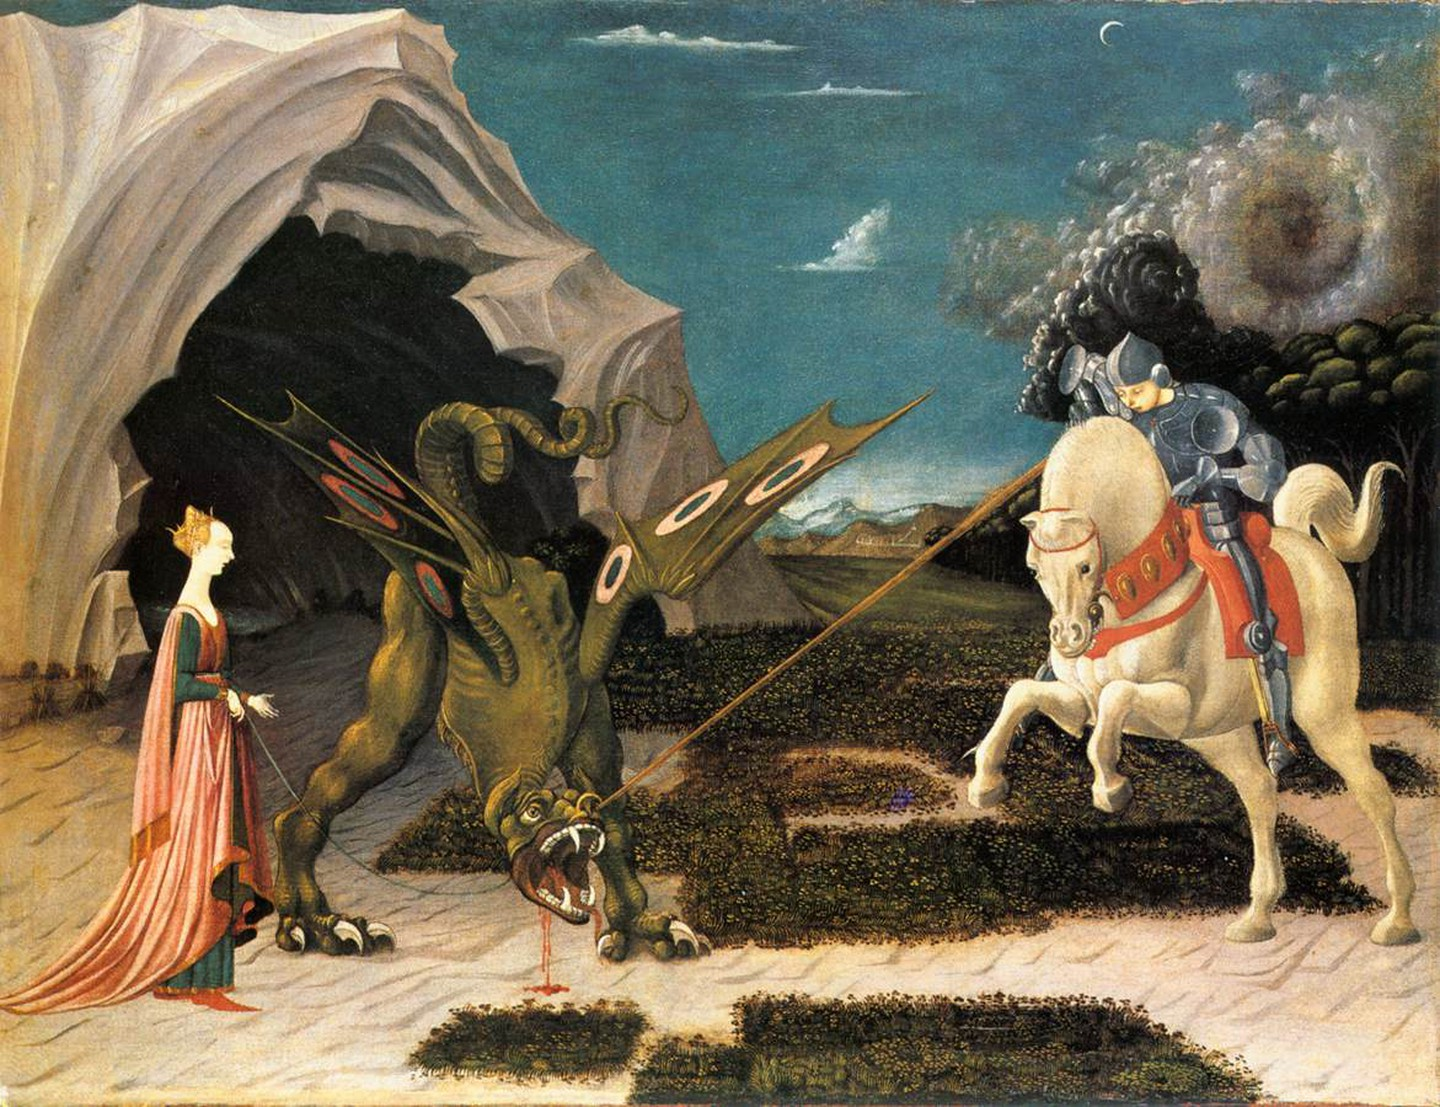 St. George and the Dragon (1470) – Paolo Uccello